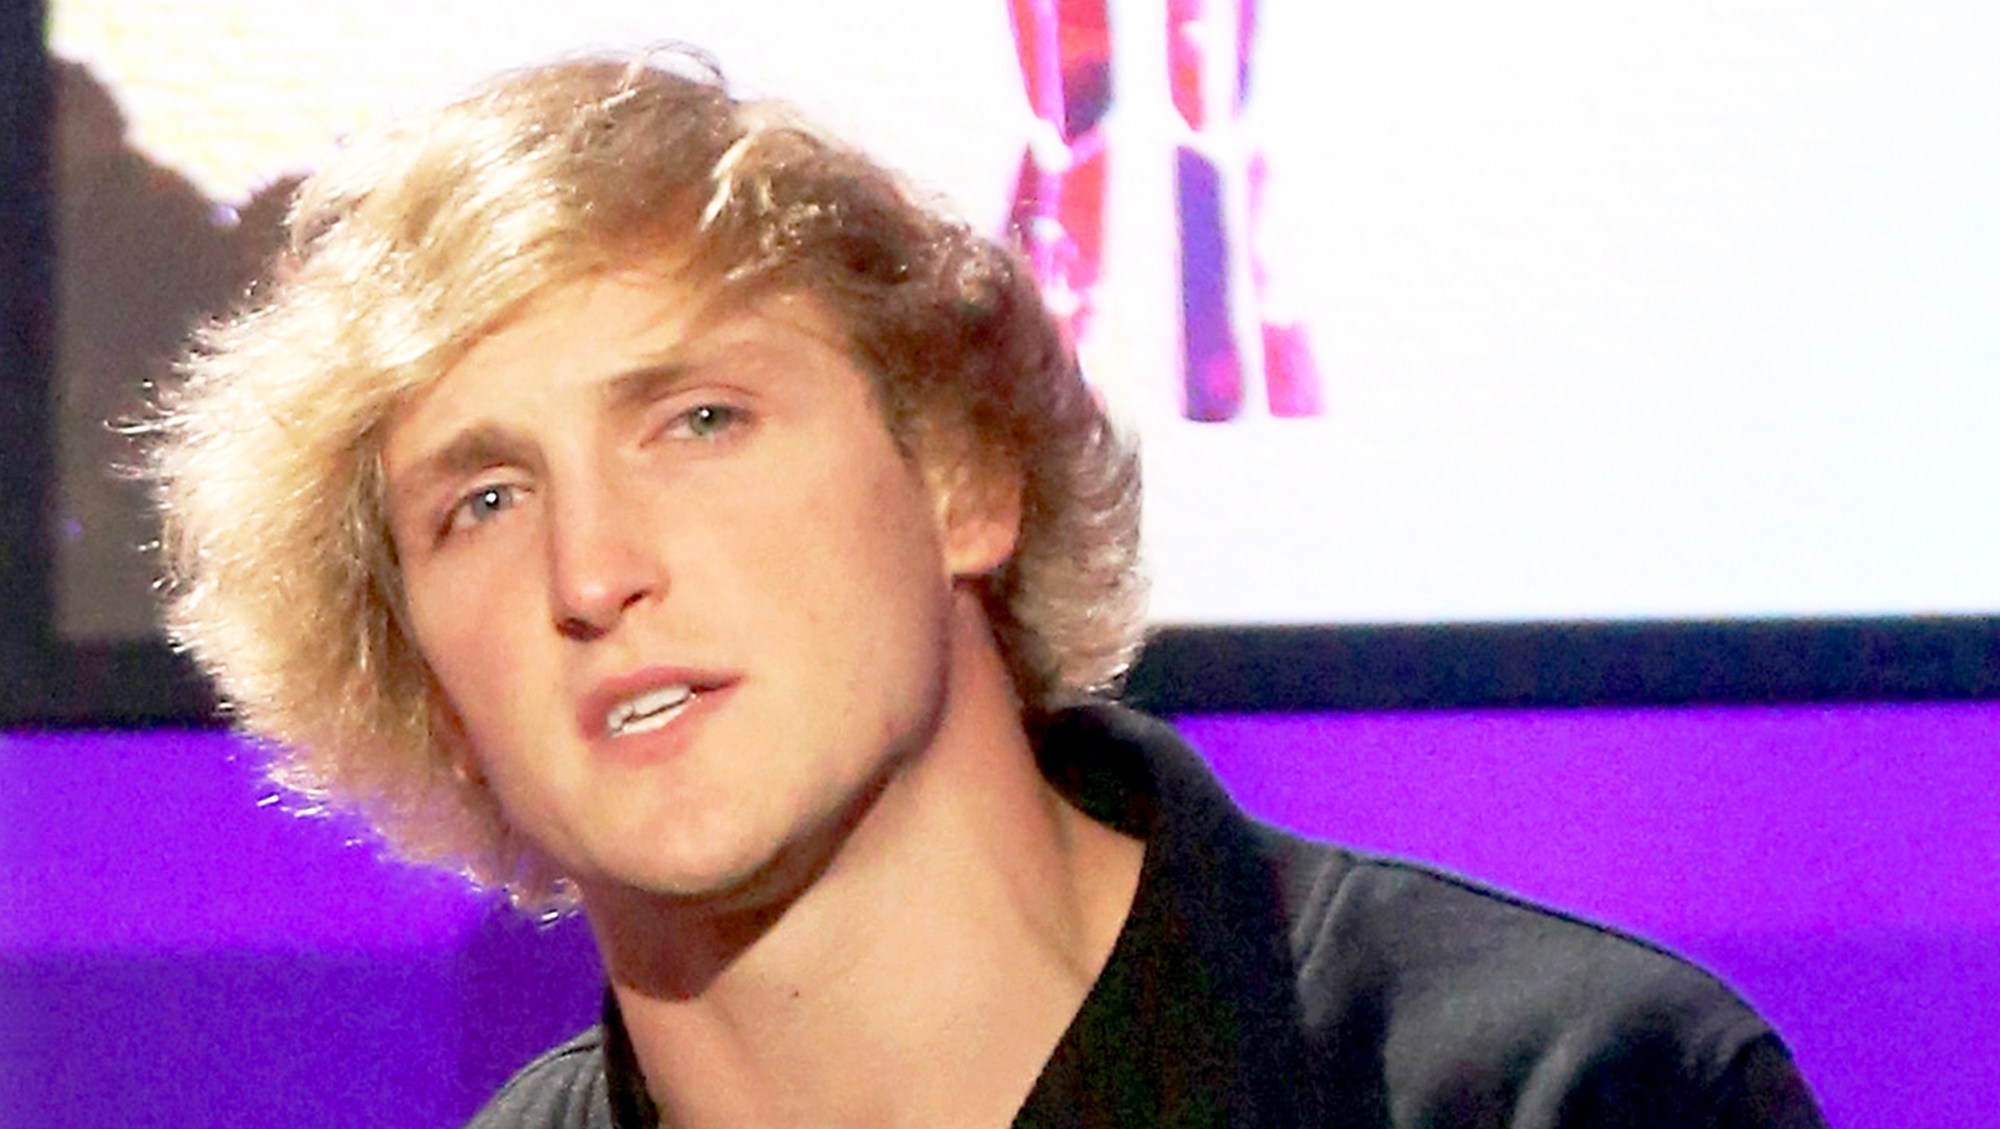 Logan Paul onstage during the 6th annual Streamy Awards at The Beverly Hilton Hotel on in Beverly Hills, California.